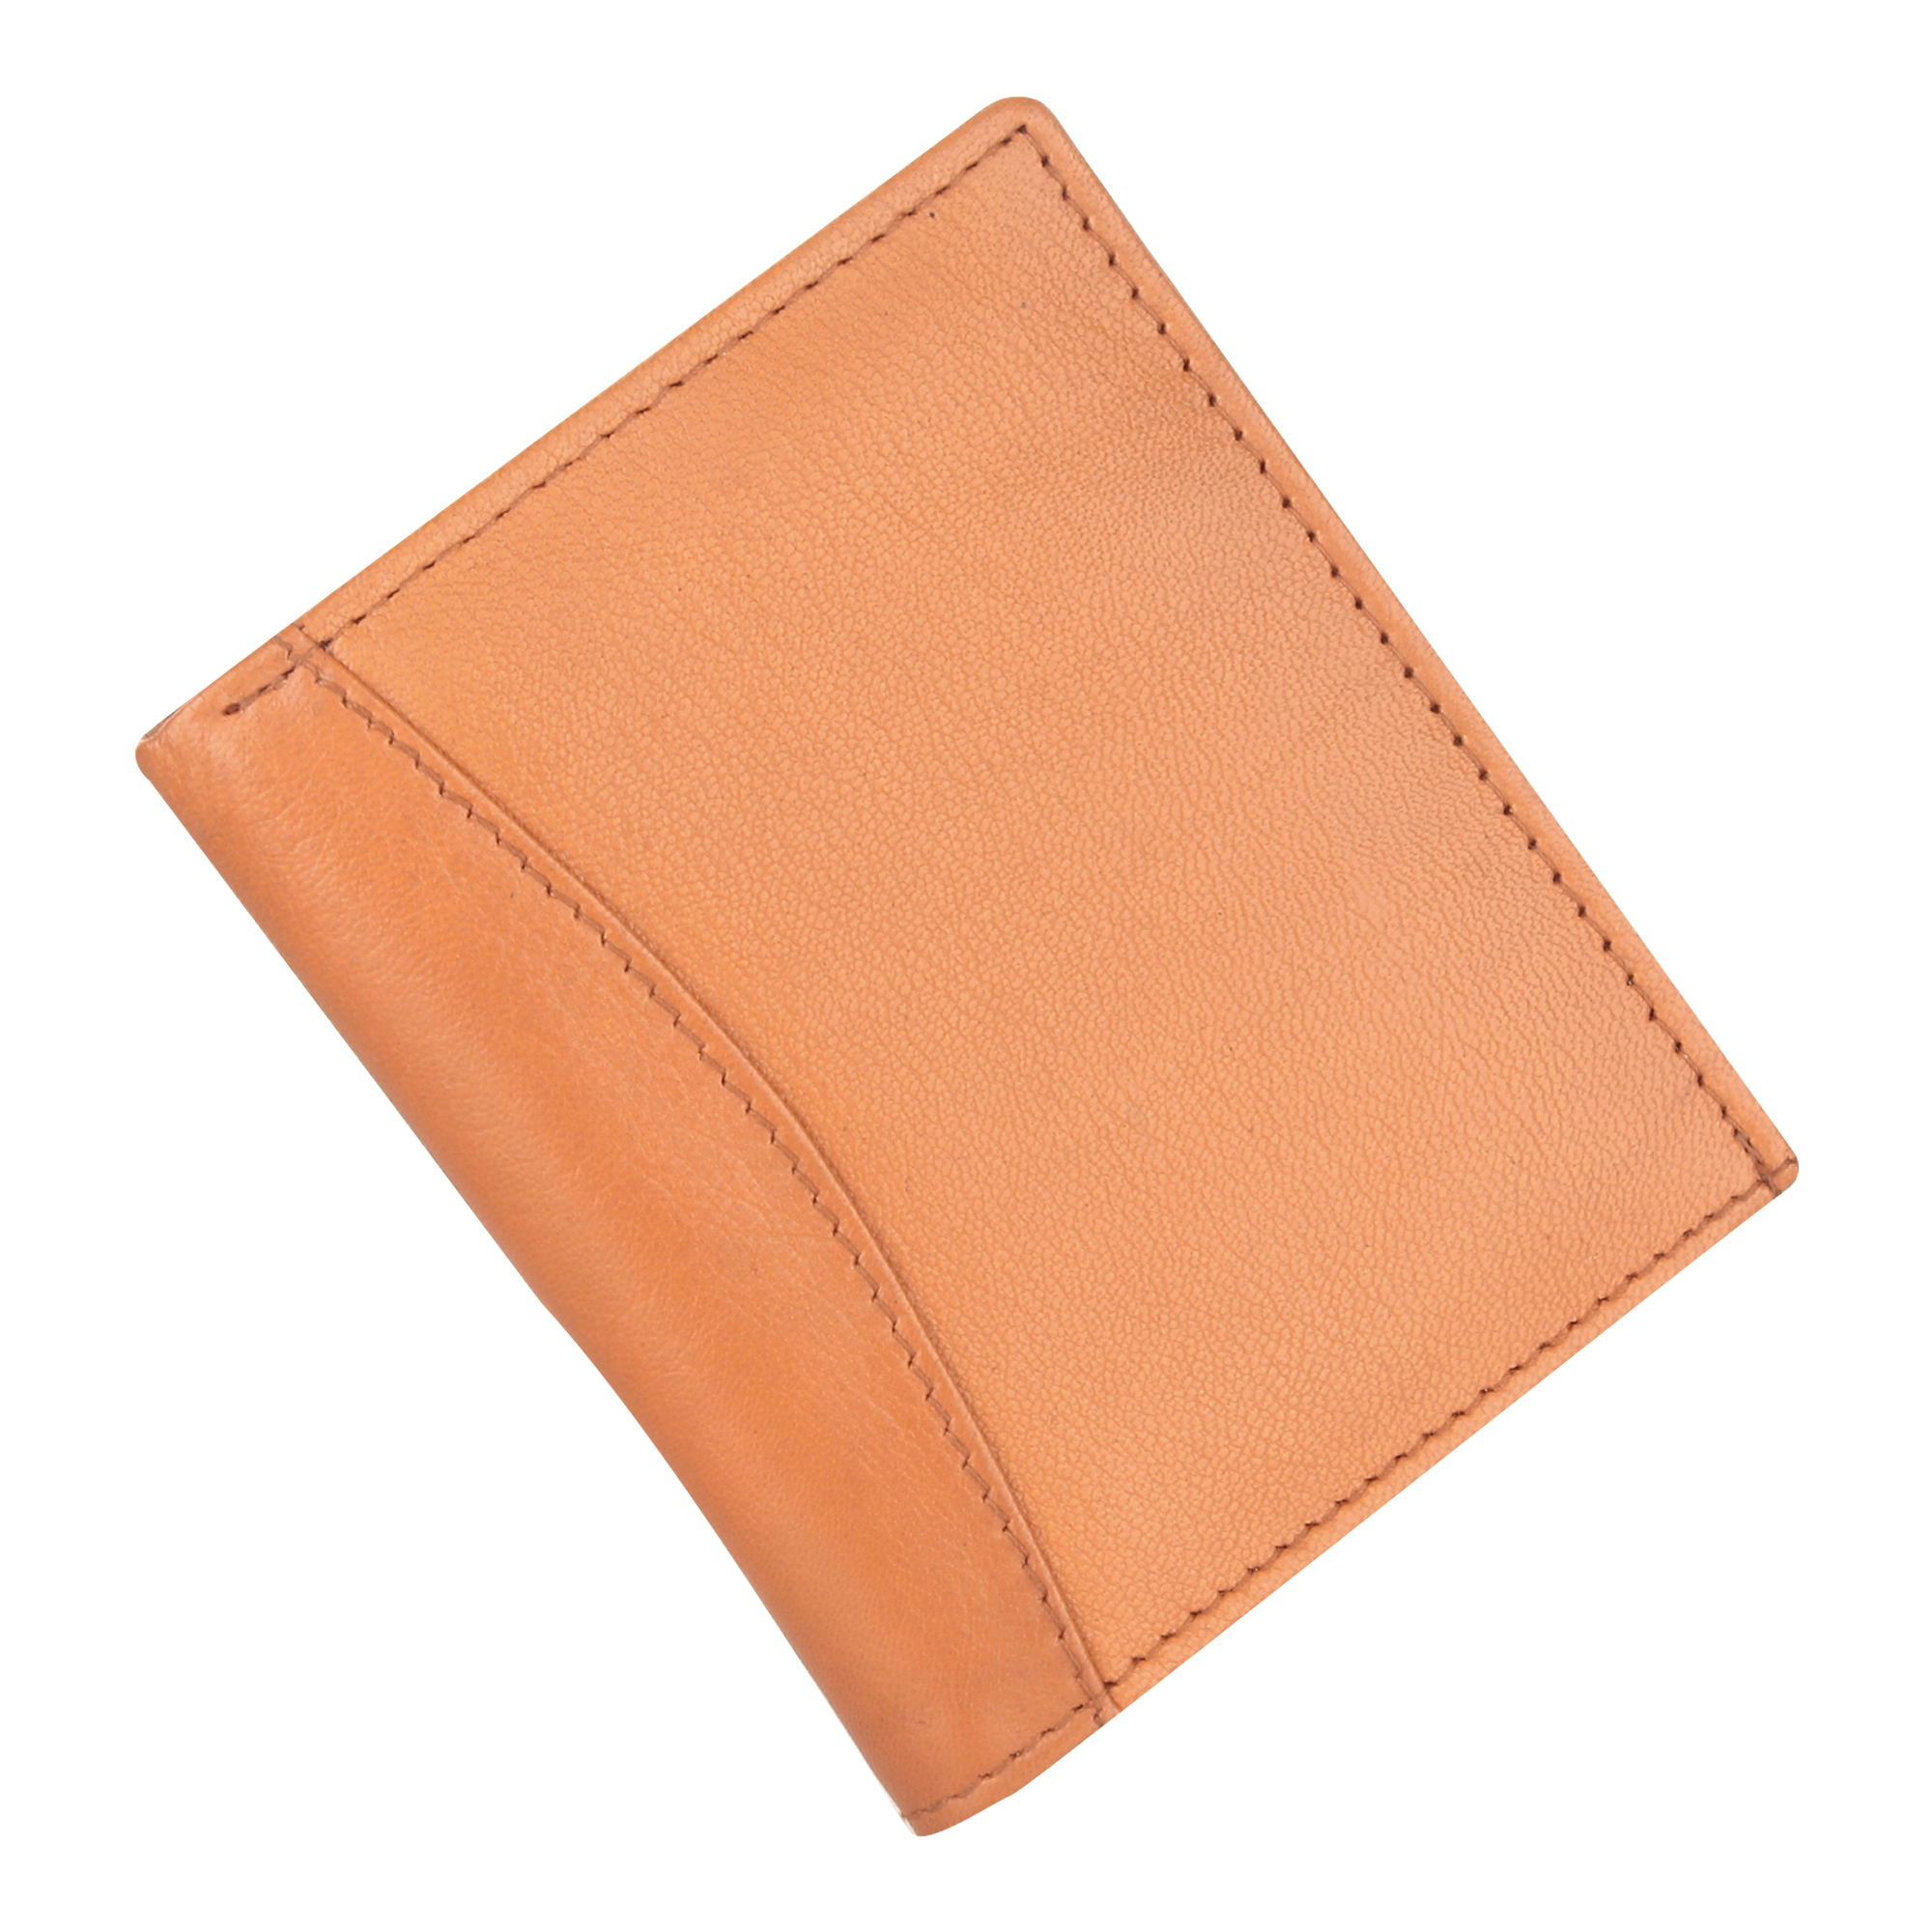 Leather Card Holder Wallet Manufacturers In Florida, Card Holder Wallet Suppliers In Florida, Card Holder Wallet Wholesalers In Florida, Card Holder Wallet Traders In Florida